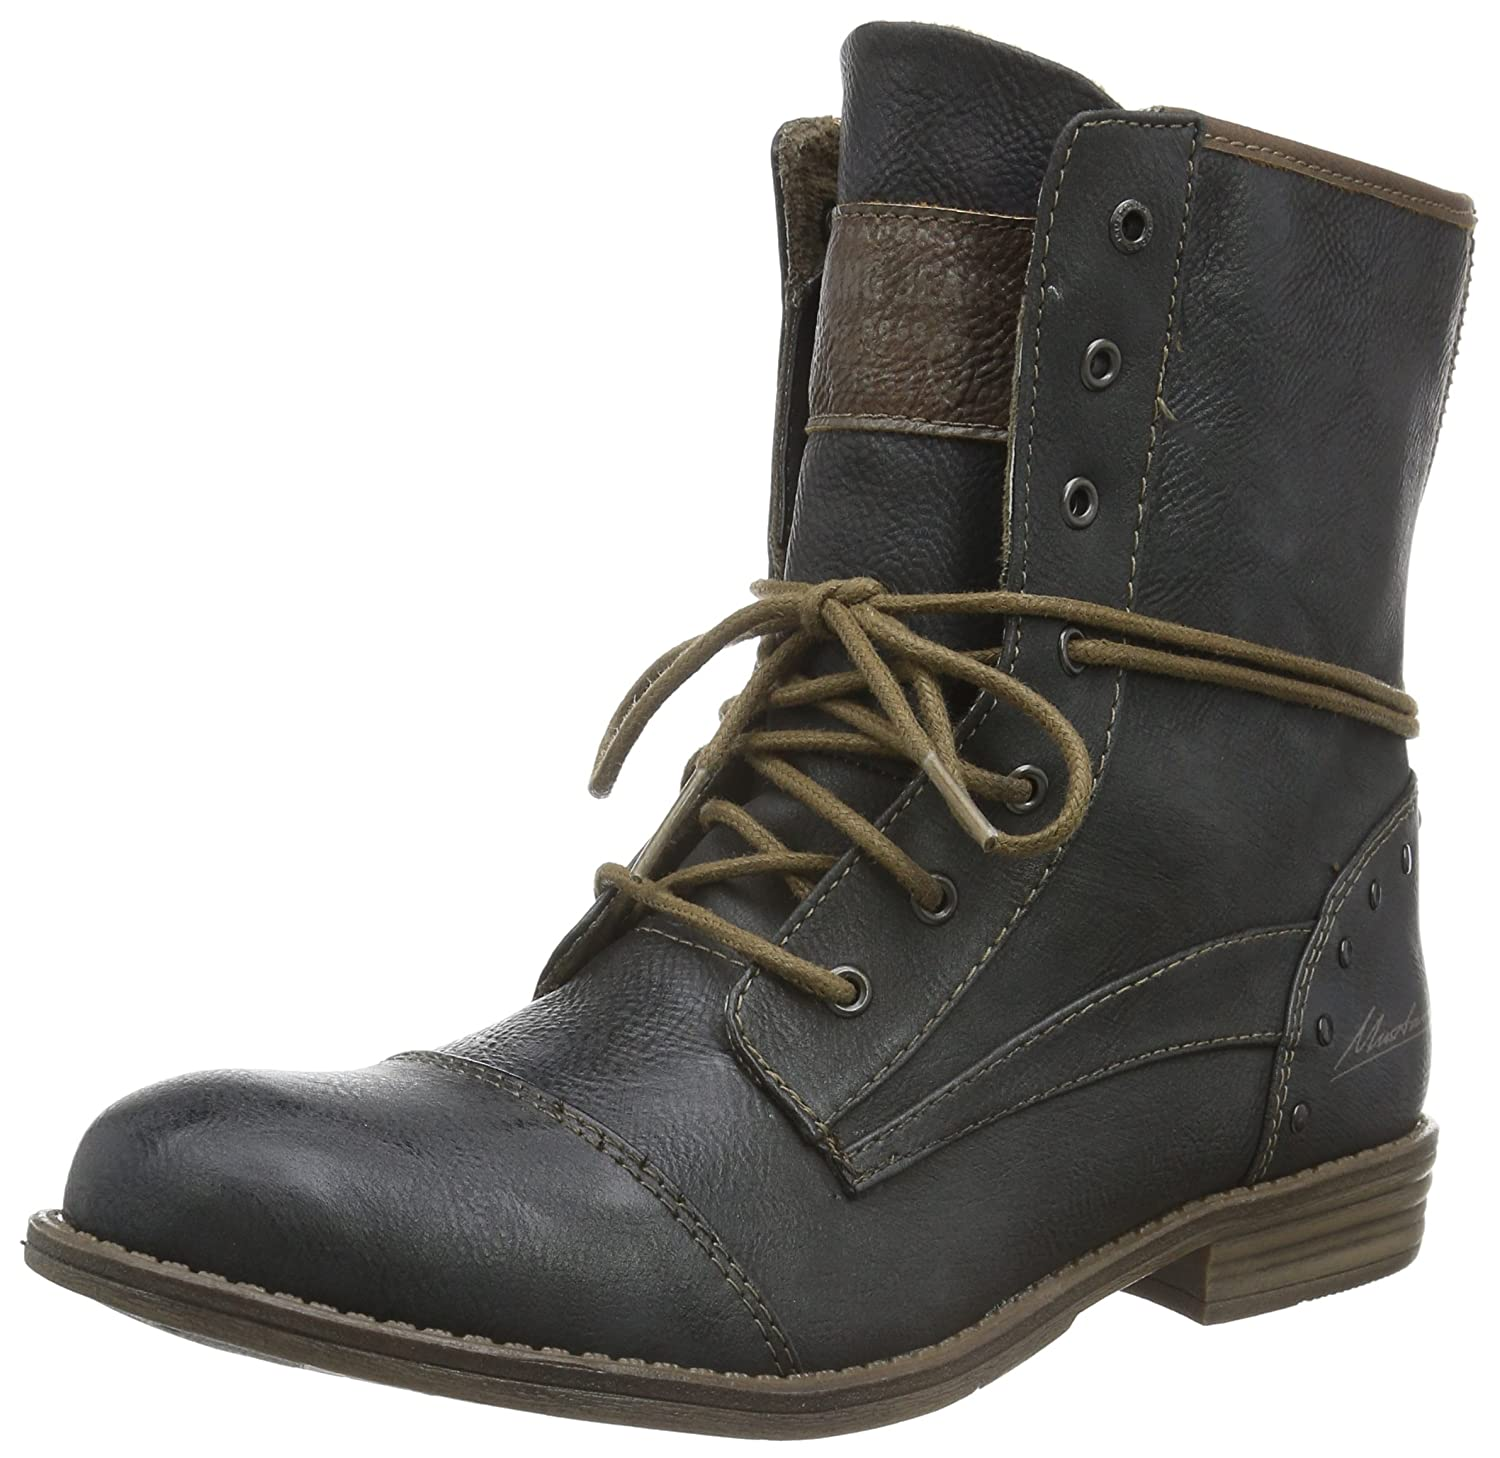 Mustang 1157, Bottes Classiques Femme Gris Femme Mustang (259 Gris Graphit) 6a6b182 - conorscully.space